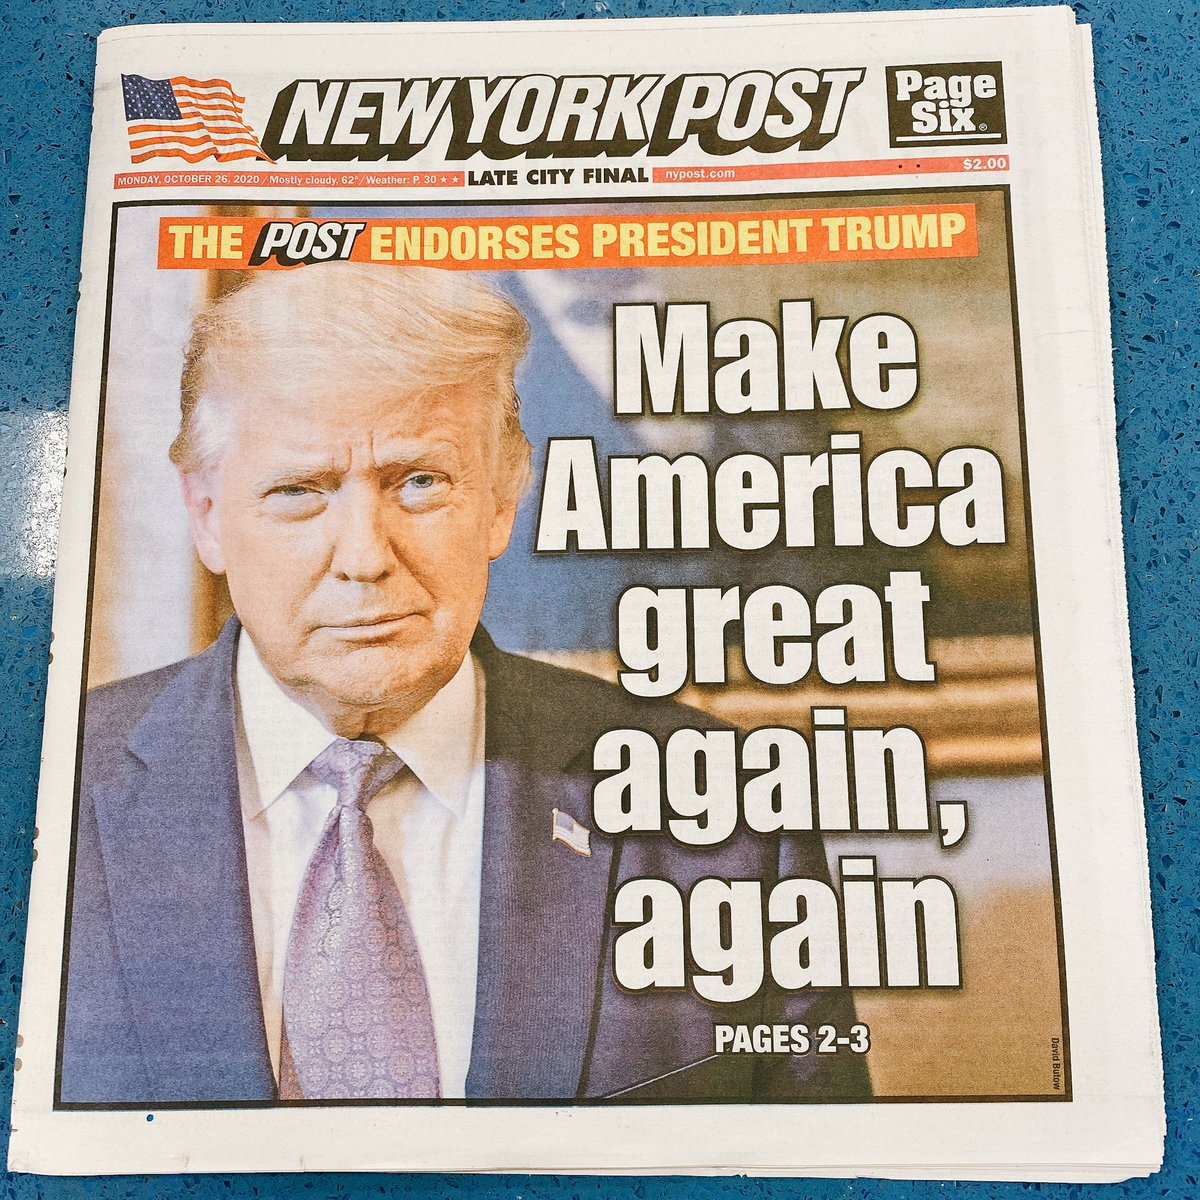 Never in my life have I bought a paper copy newspaper. Just had to this morning when I saw @nypost endorsing @realDonaldTrump. Very nice cashier lady told me that she loves @realDonaldTrump and he will be back for #FourMoreYears. This is in very liberal #NYC at the #PABT